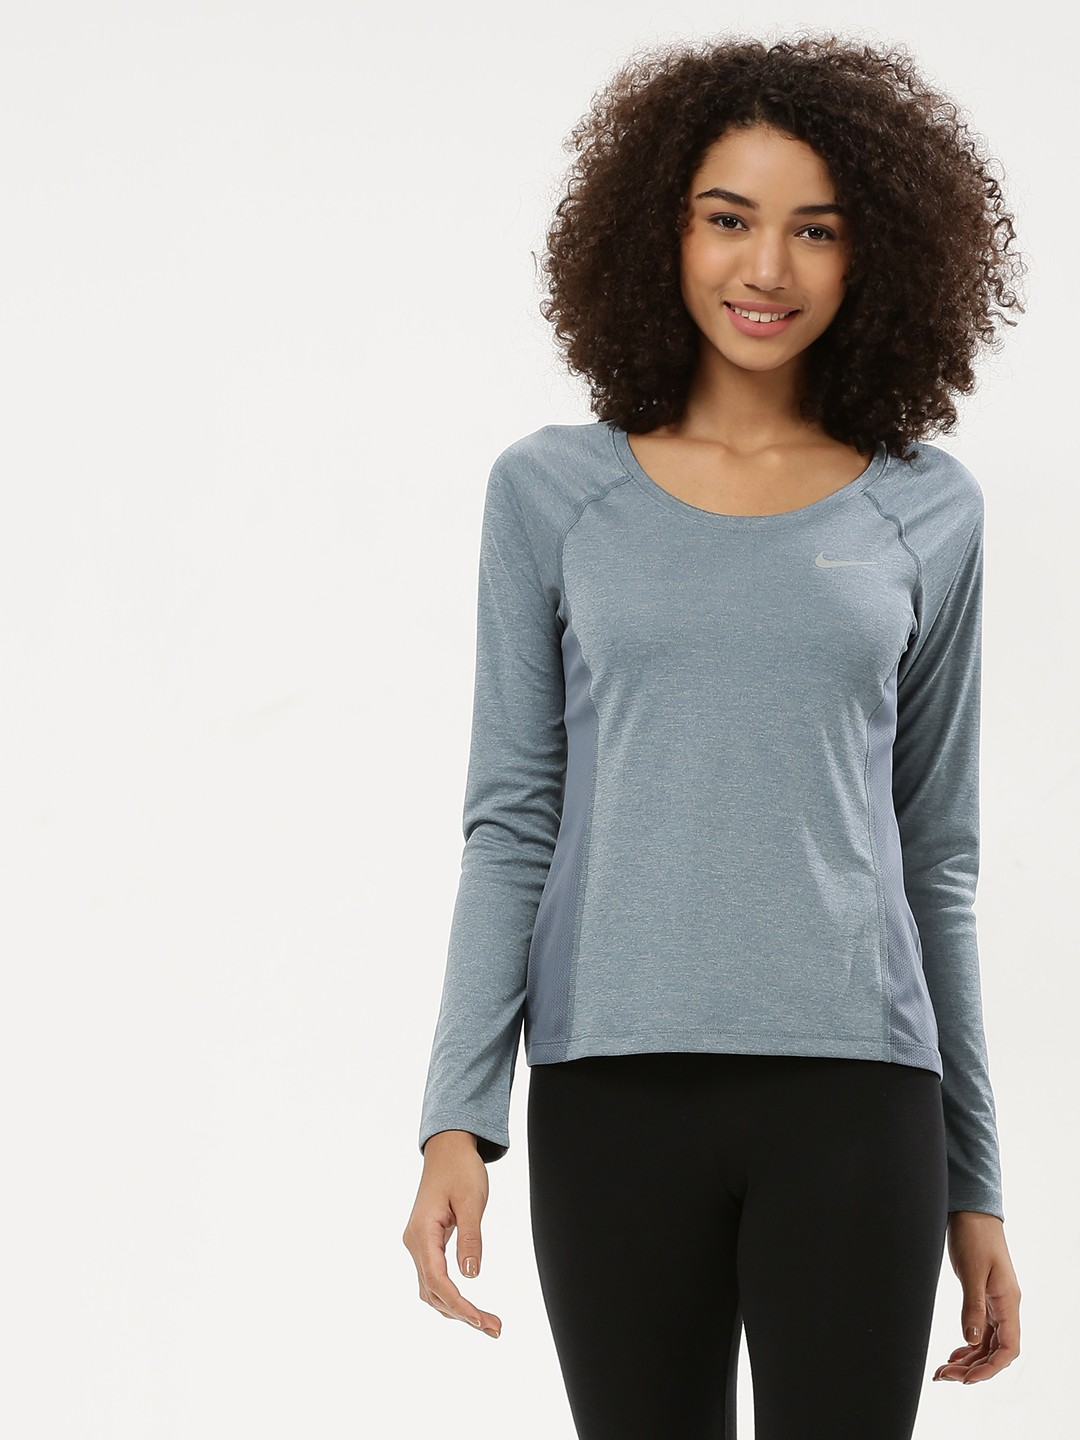 Buy Nike ARMORY BLUEHTR As W Nk Dry Miler Top Ls for Girls